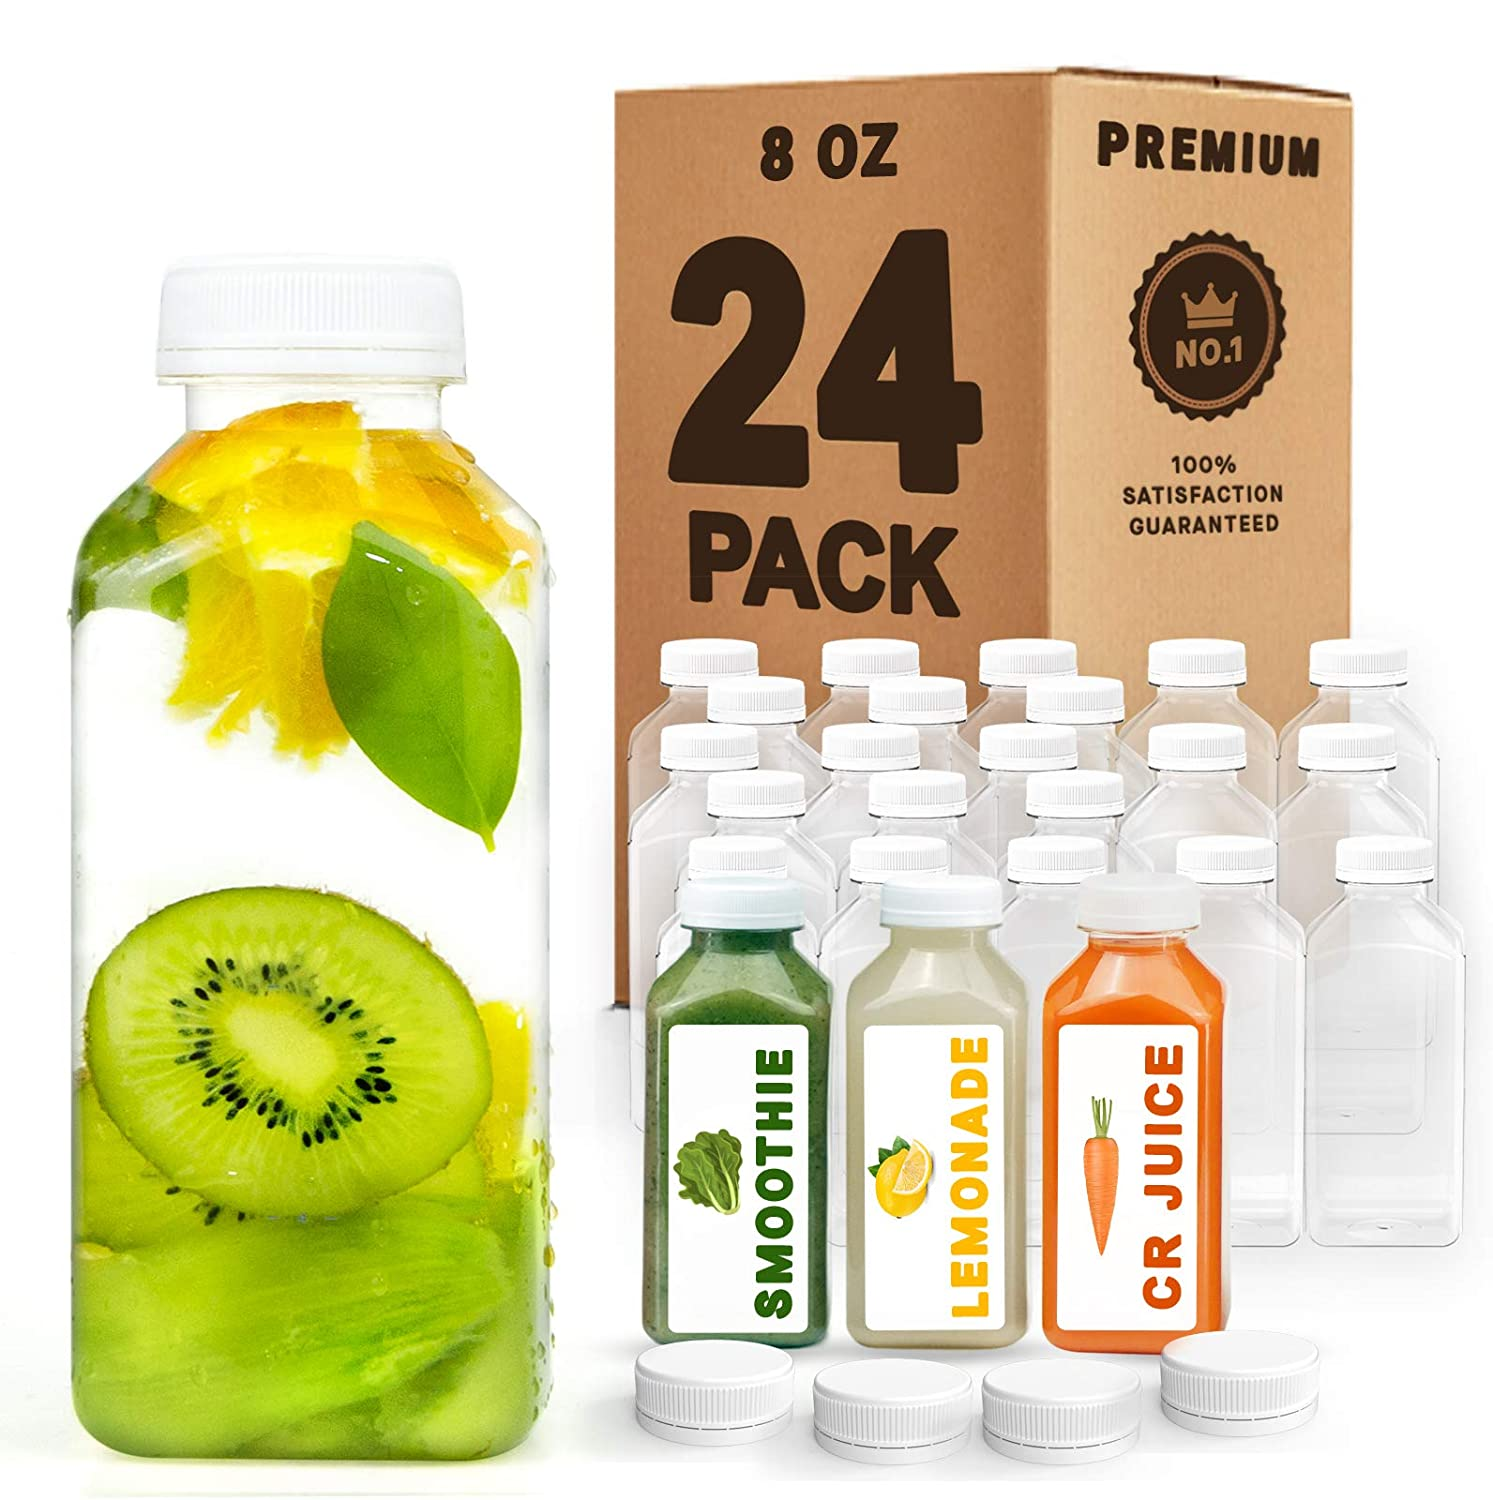 Norcalway 8 oz Plastic Juice Bottles with Caps Lids - Smoothie Bottles, Drink Juice Containers with Lids, Reusable Juice Bottles for Juicing, 24 Pack